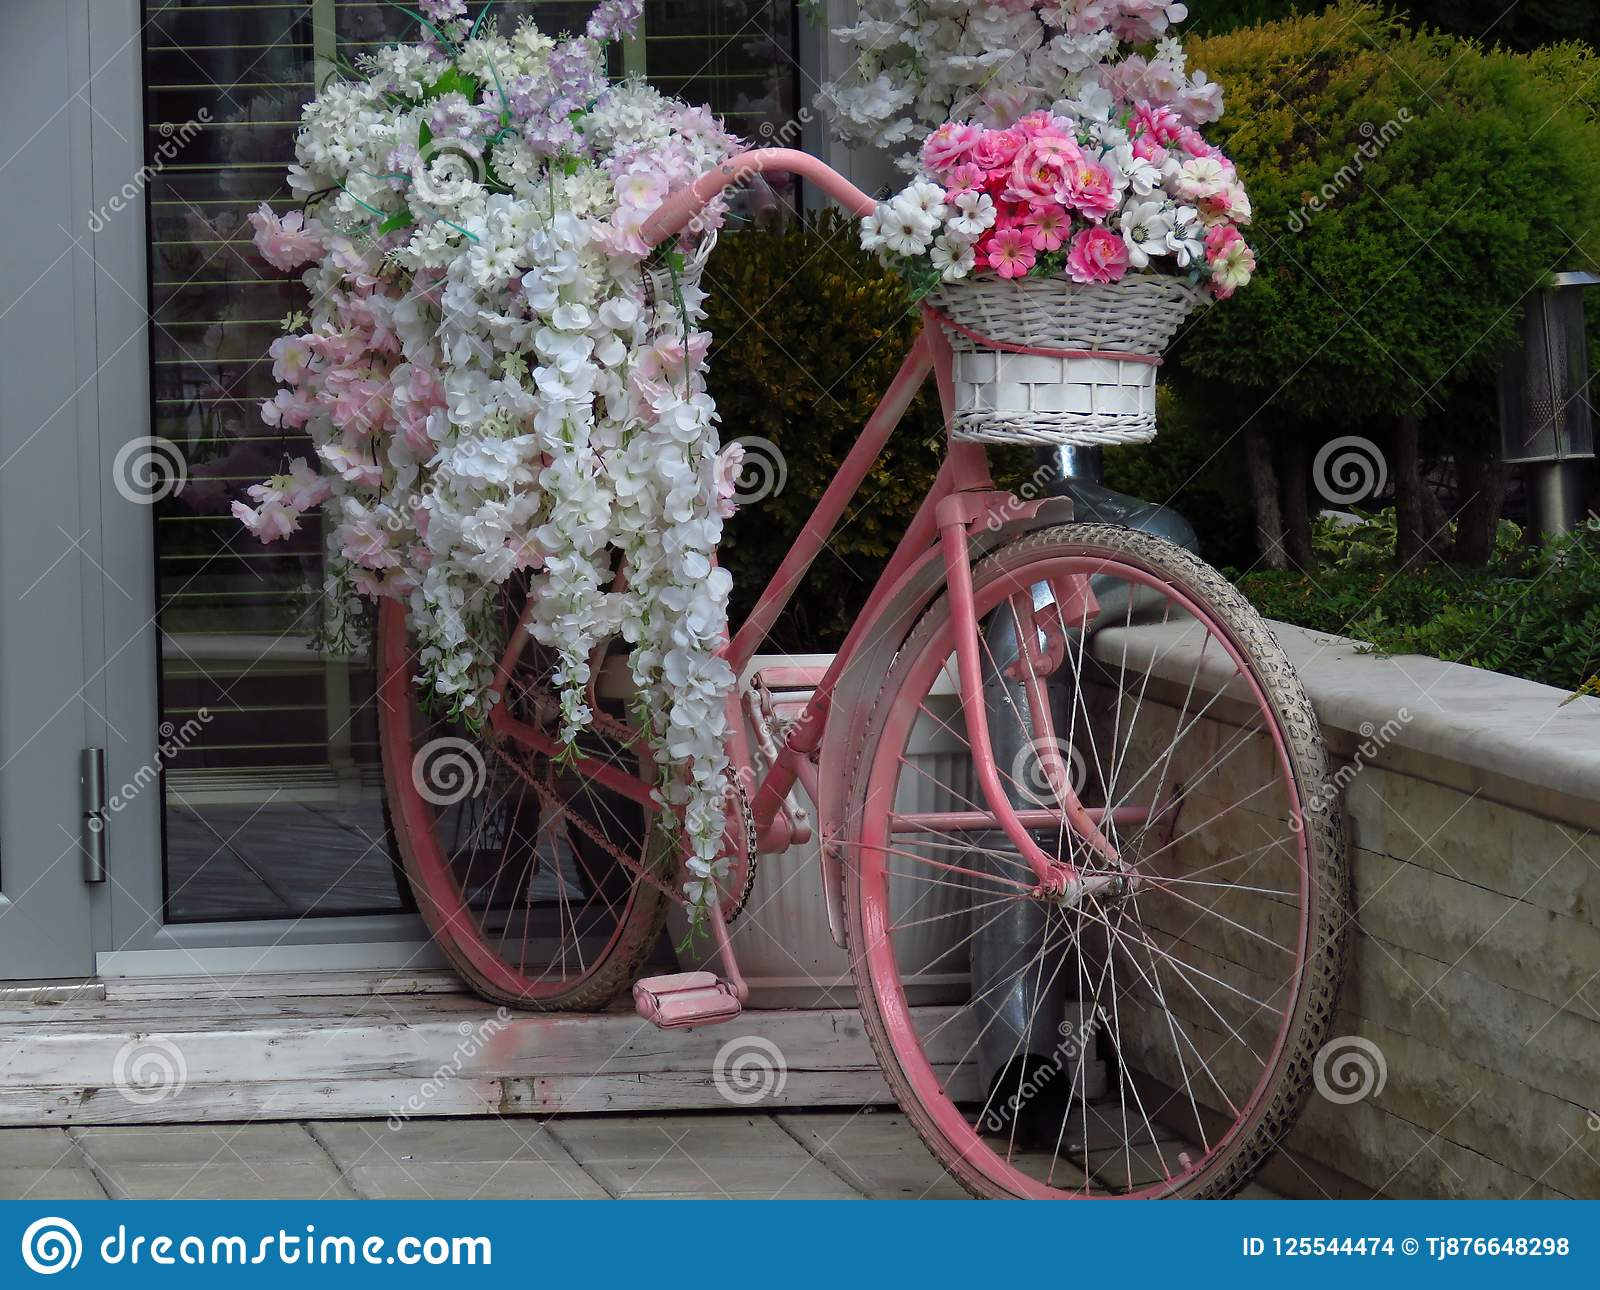 Repurposed bike used as garden decoration with flowers flower repurposed bike used as garden decoration with flowers flower container flowers decoration mightylinksfo